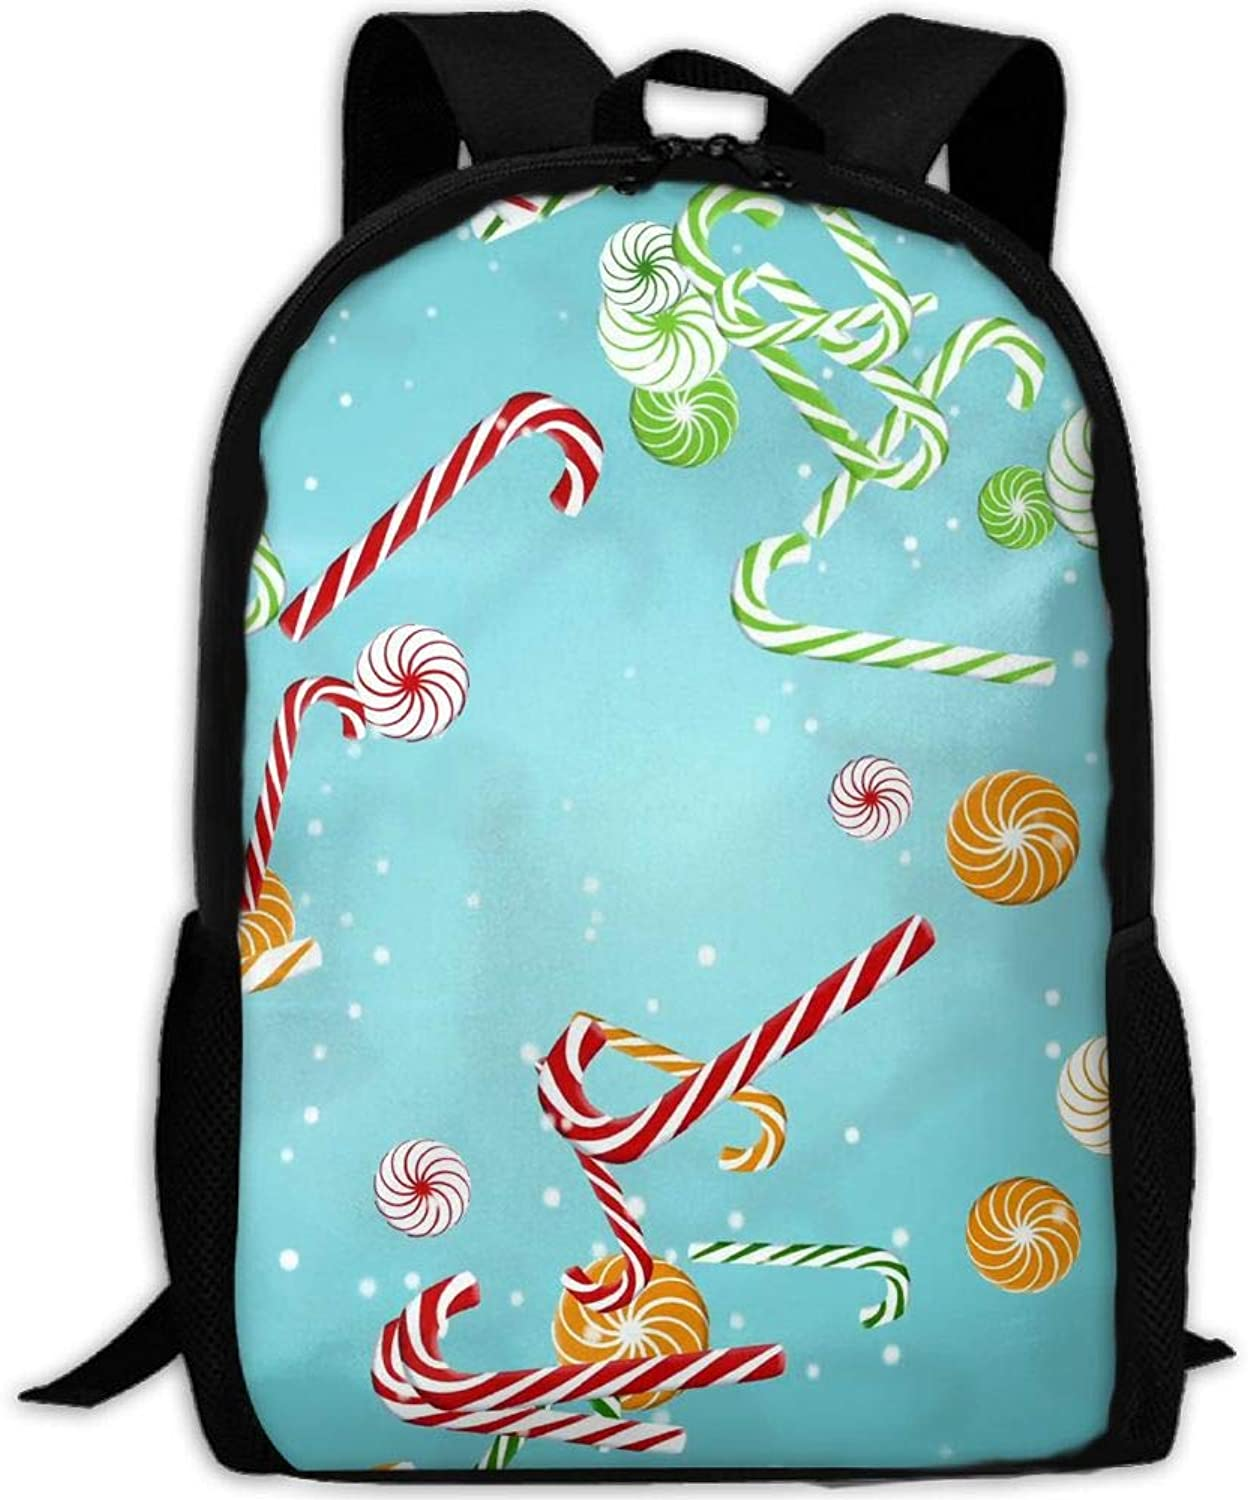 f96567276807 Backpack Briefcase Hiking School Shoulder Bags Candy Canes Daypack ...